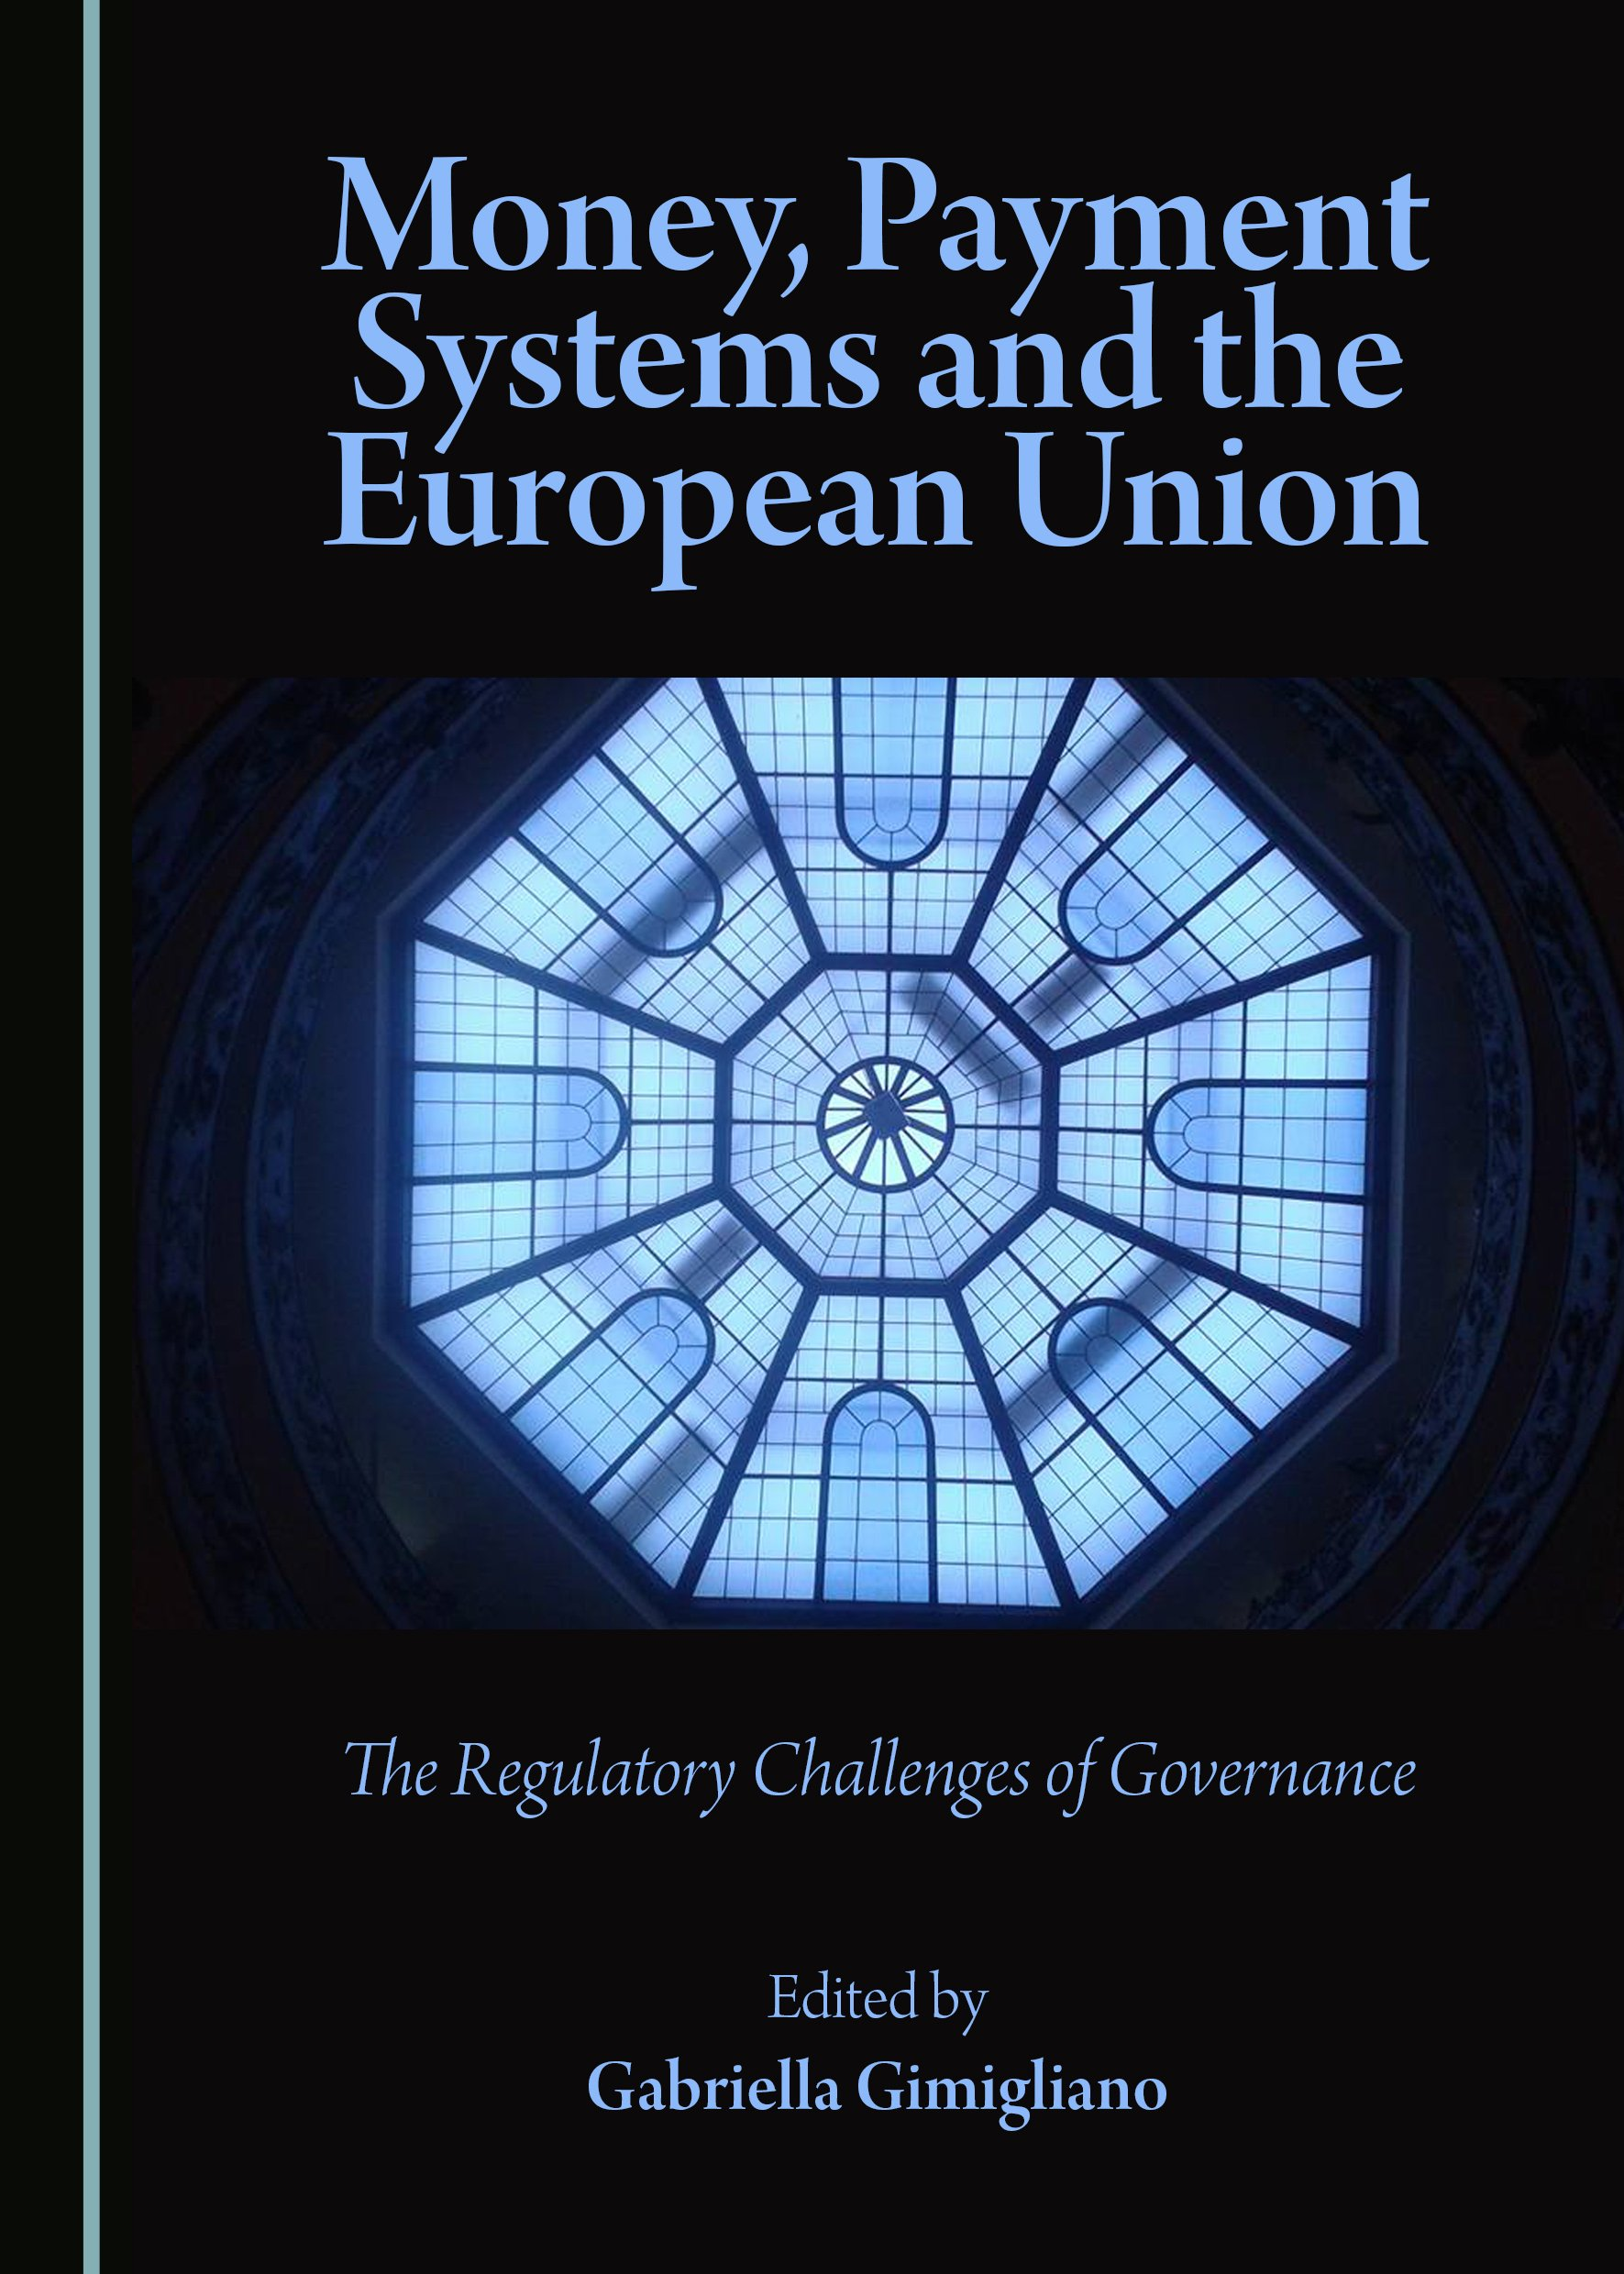 Money, Payment Systems and the European Union: The Regulatory Challenges of Governance